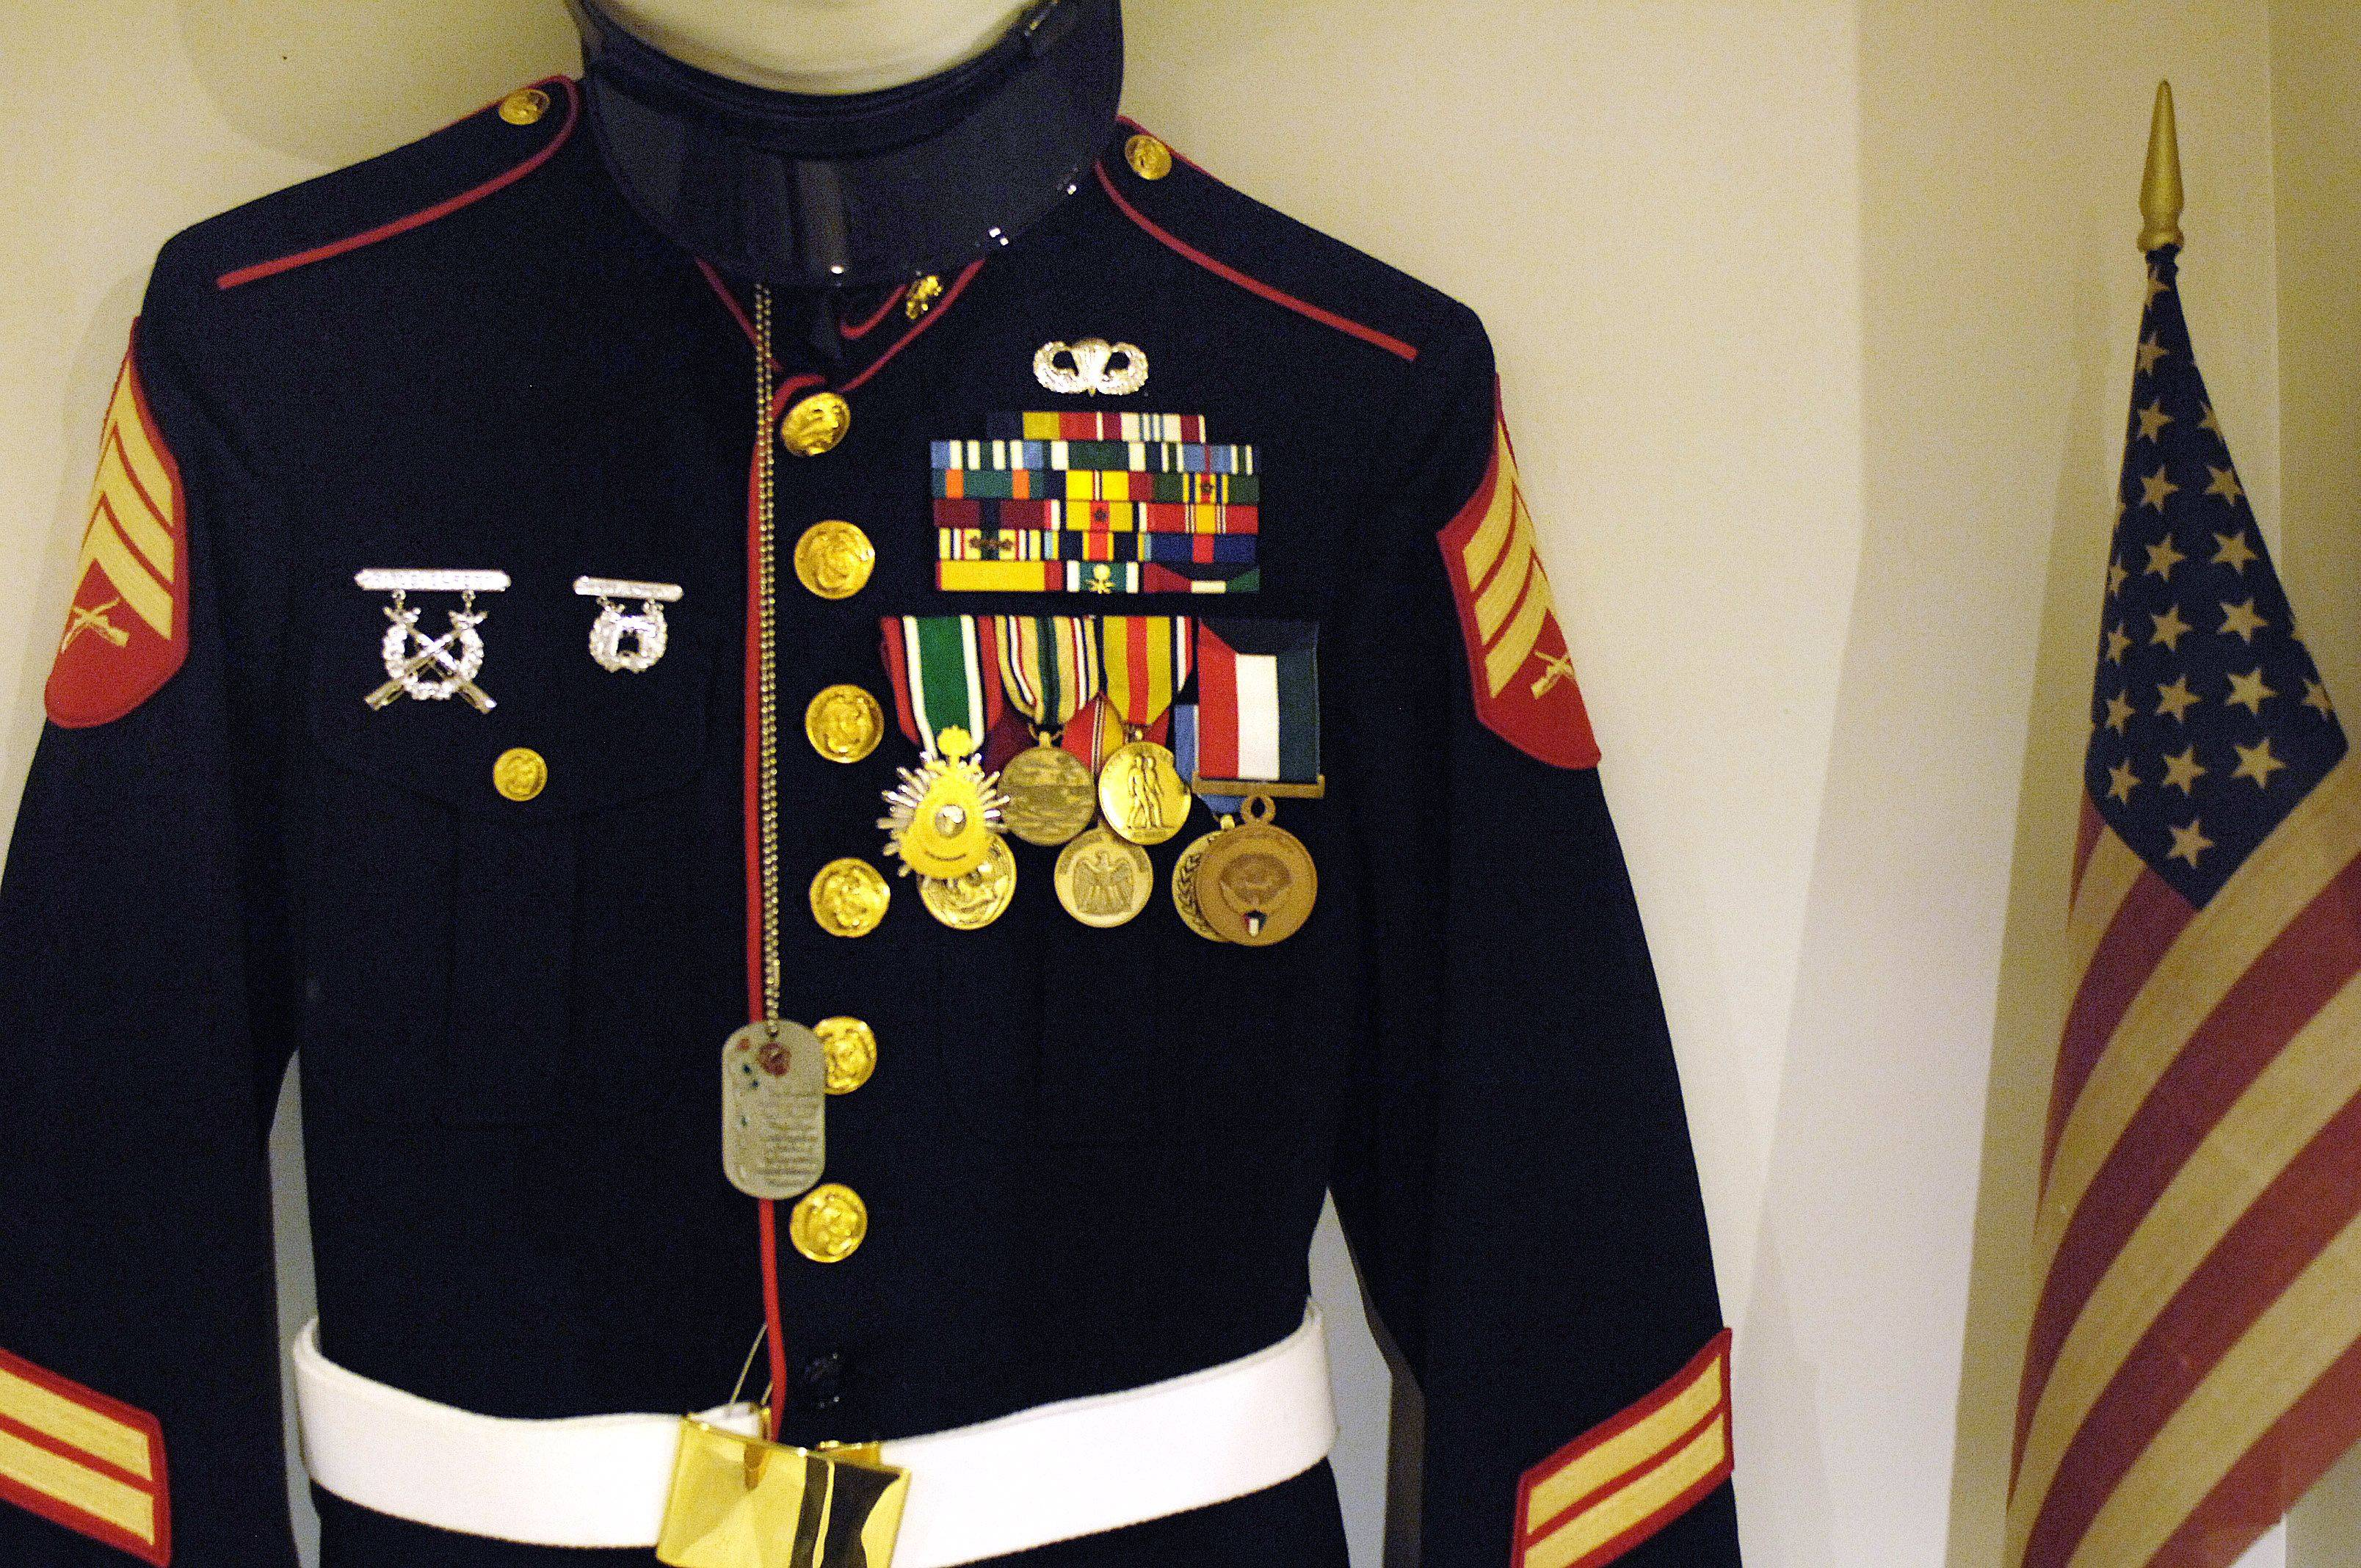 This is Dan Sauer's uniform along with medals from his time as a Marine in Desert Storm.